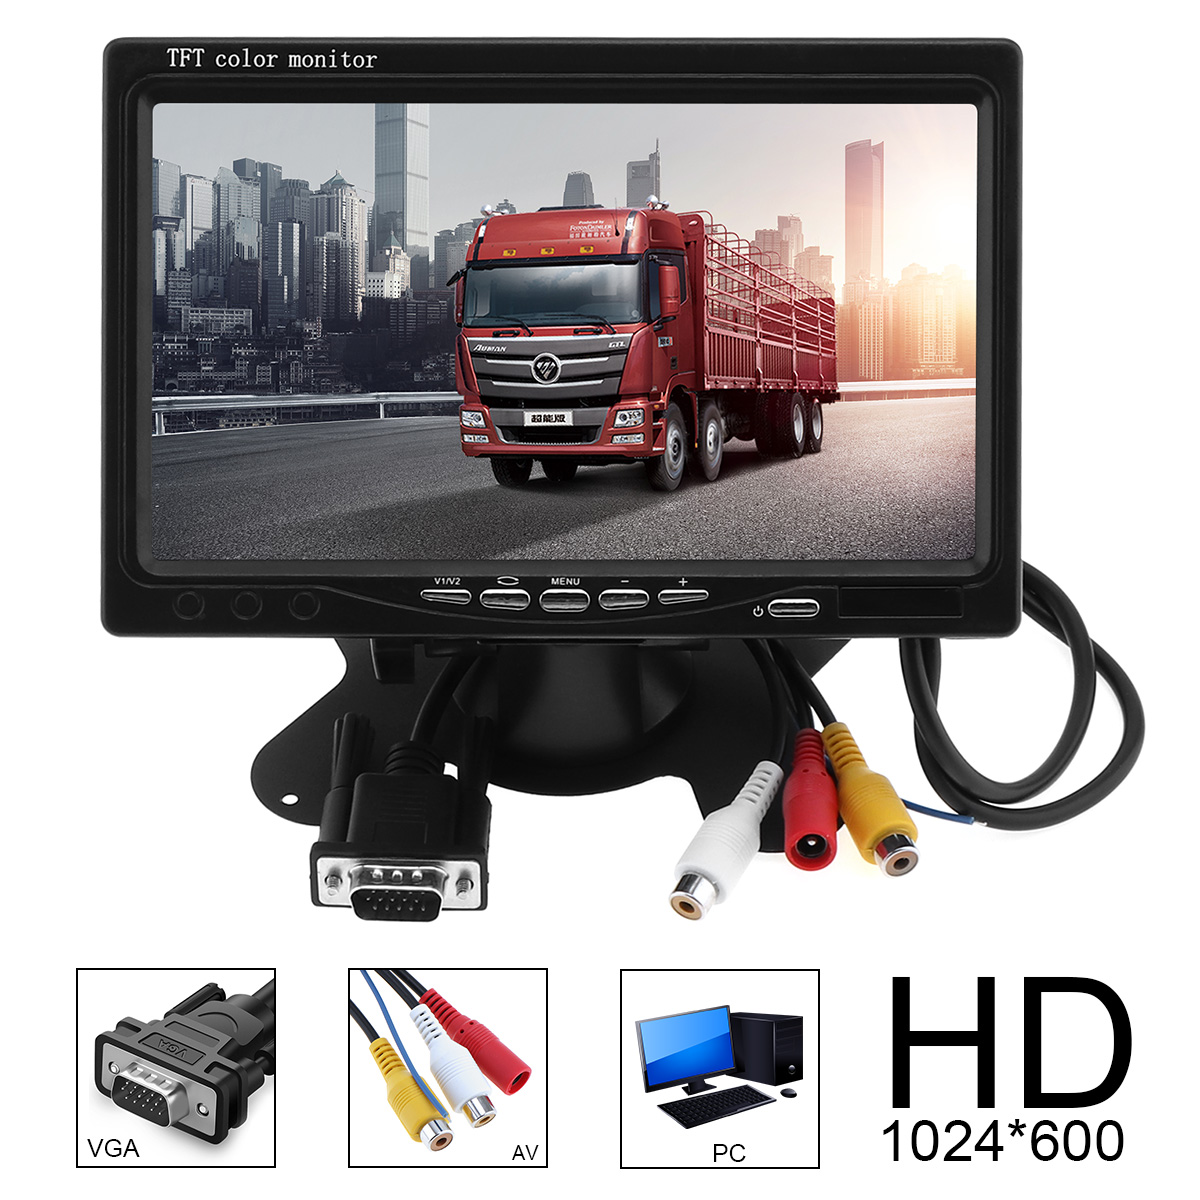 Monitor Vga-Interface AV Ultra-Thin 7inch Audio Video 1024x600 Tft Lcd Car with Bright-Color